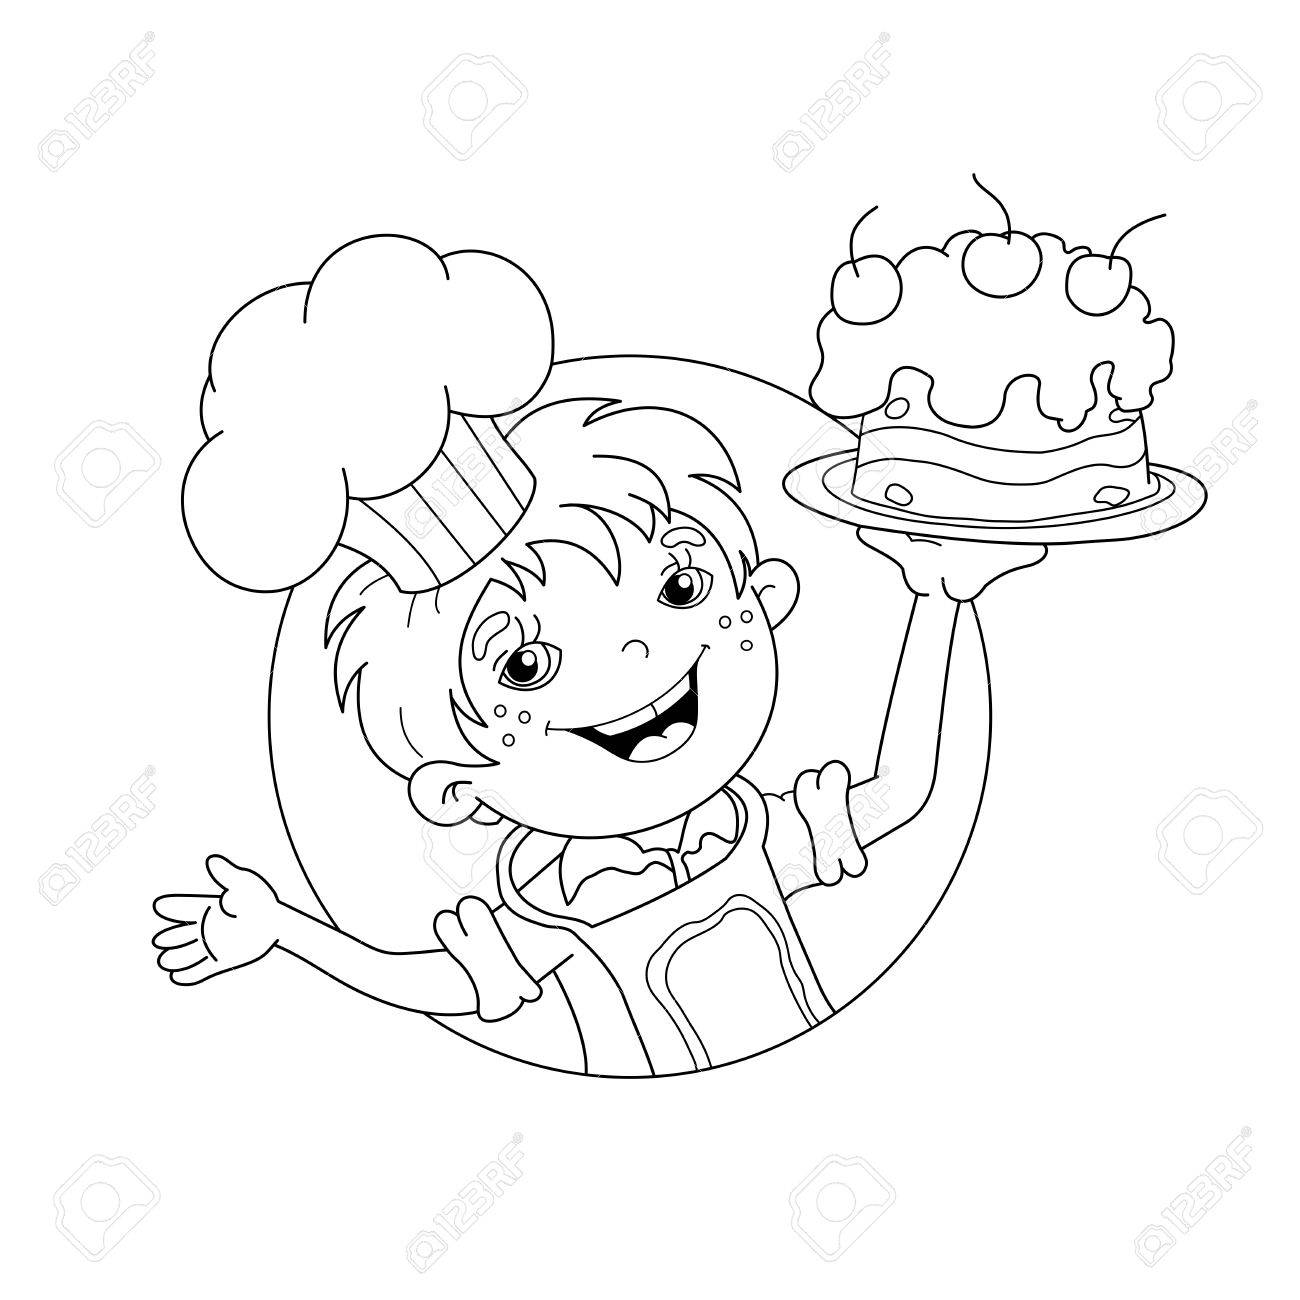 Coloring Page Outline Of Cartoon Boy Chef With Cake Book For Kids Stock Vector